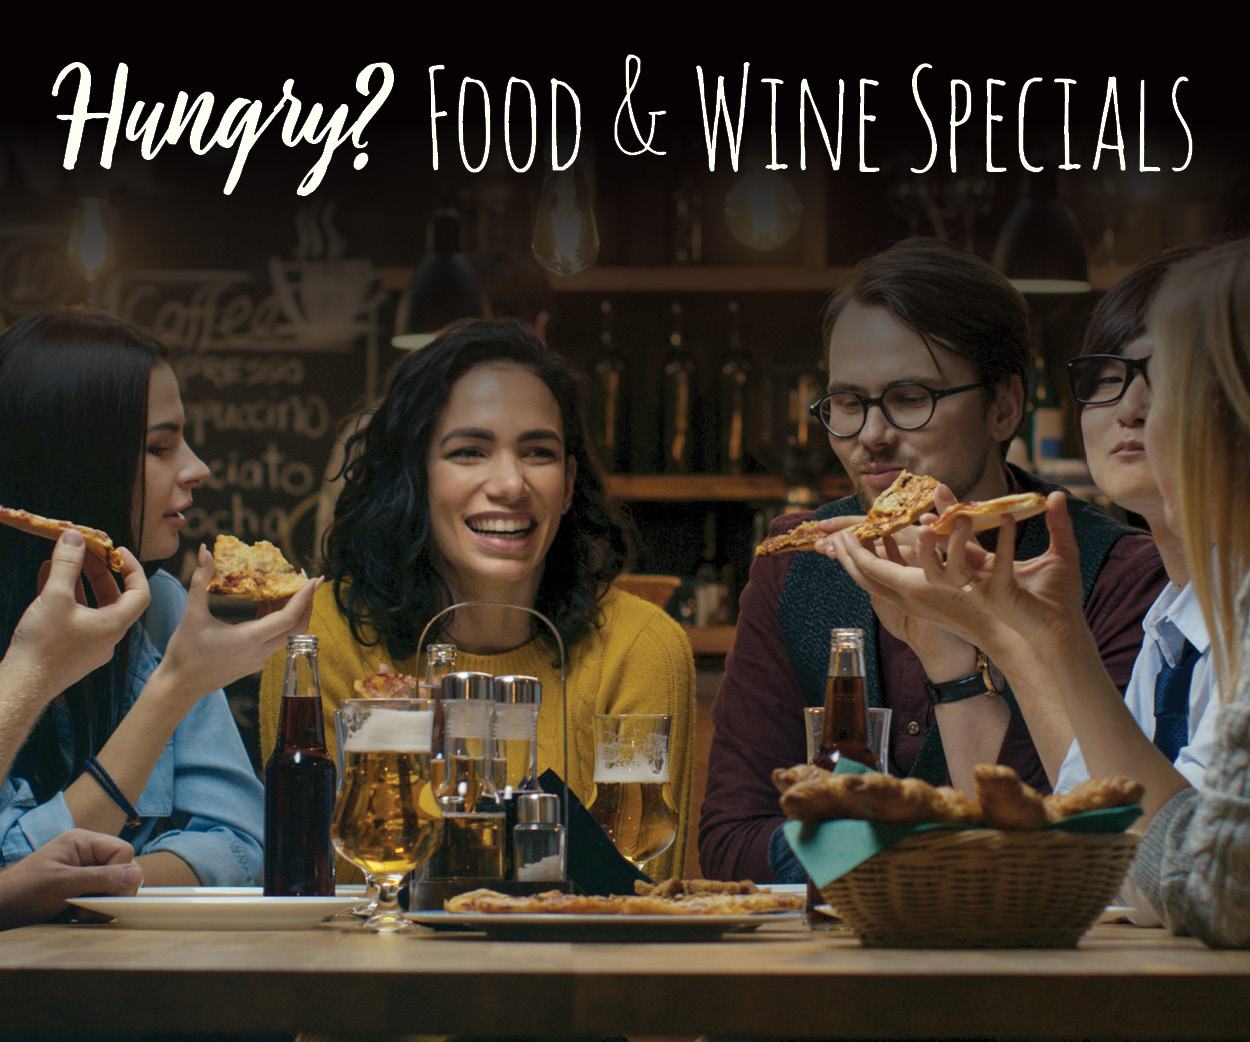 Food and Wine Specials